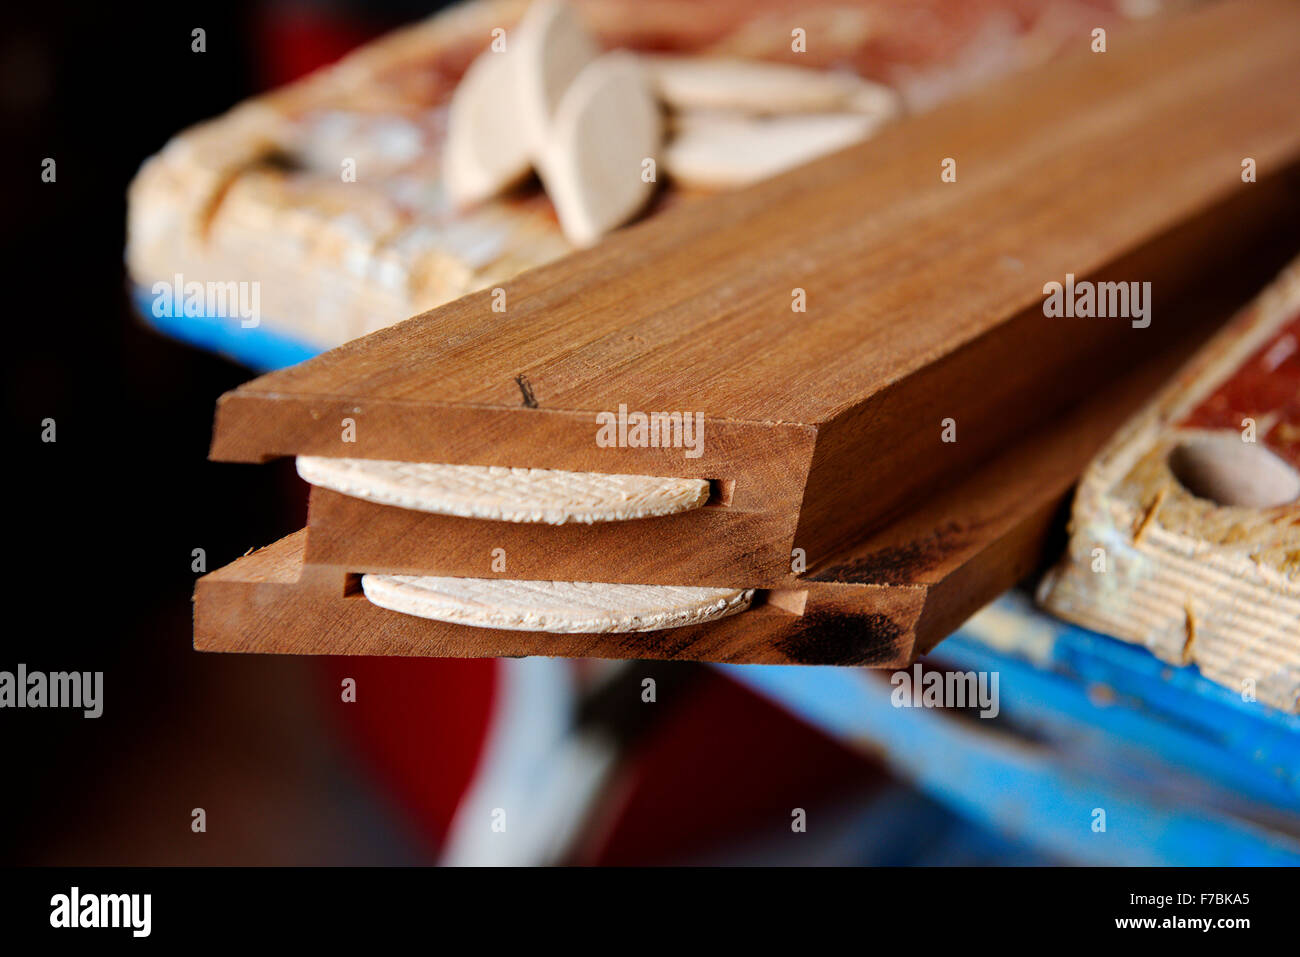 Wooden frame with mitre cut to make a square corner and double slots for jointing biscuits, both biscuits inserted - Stock Image